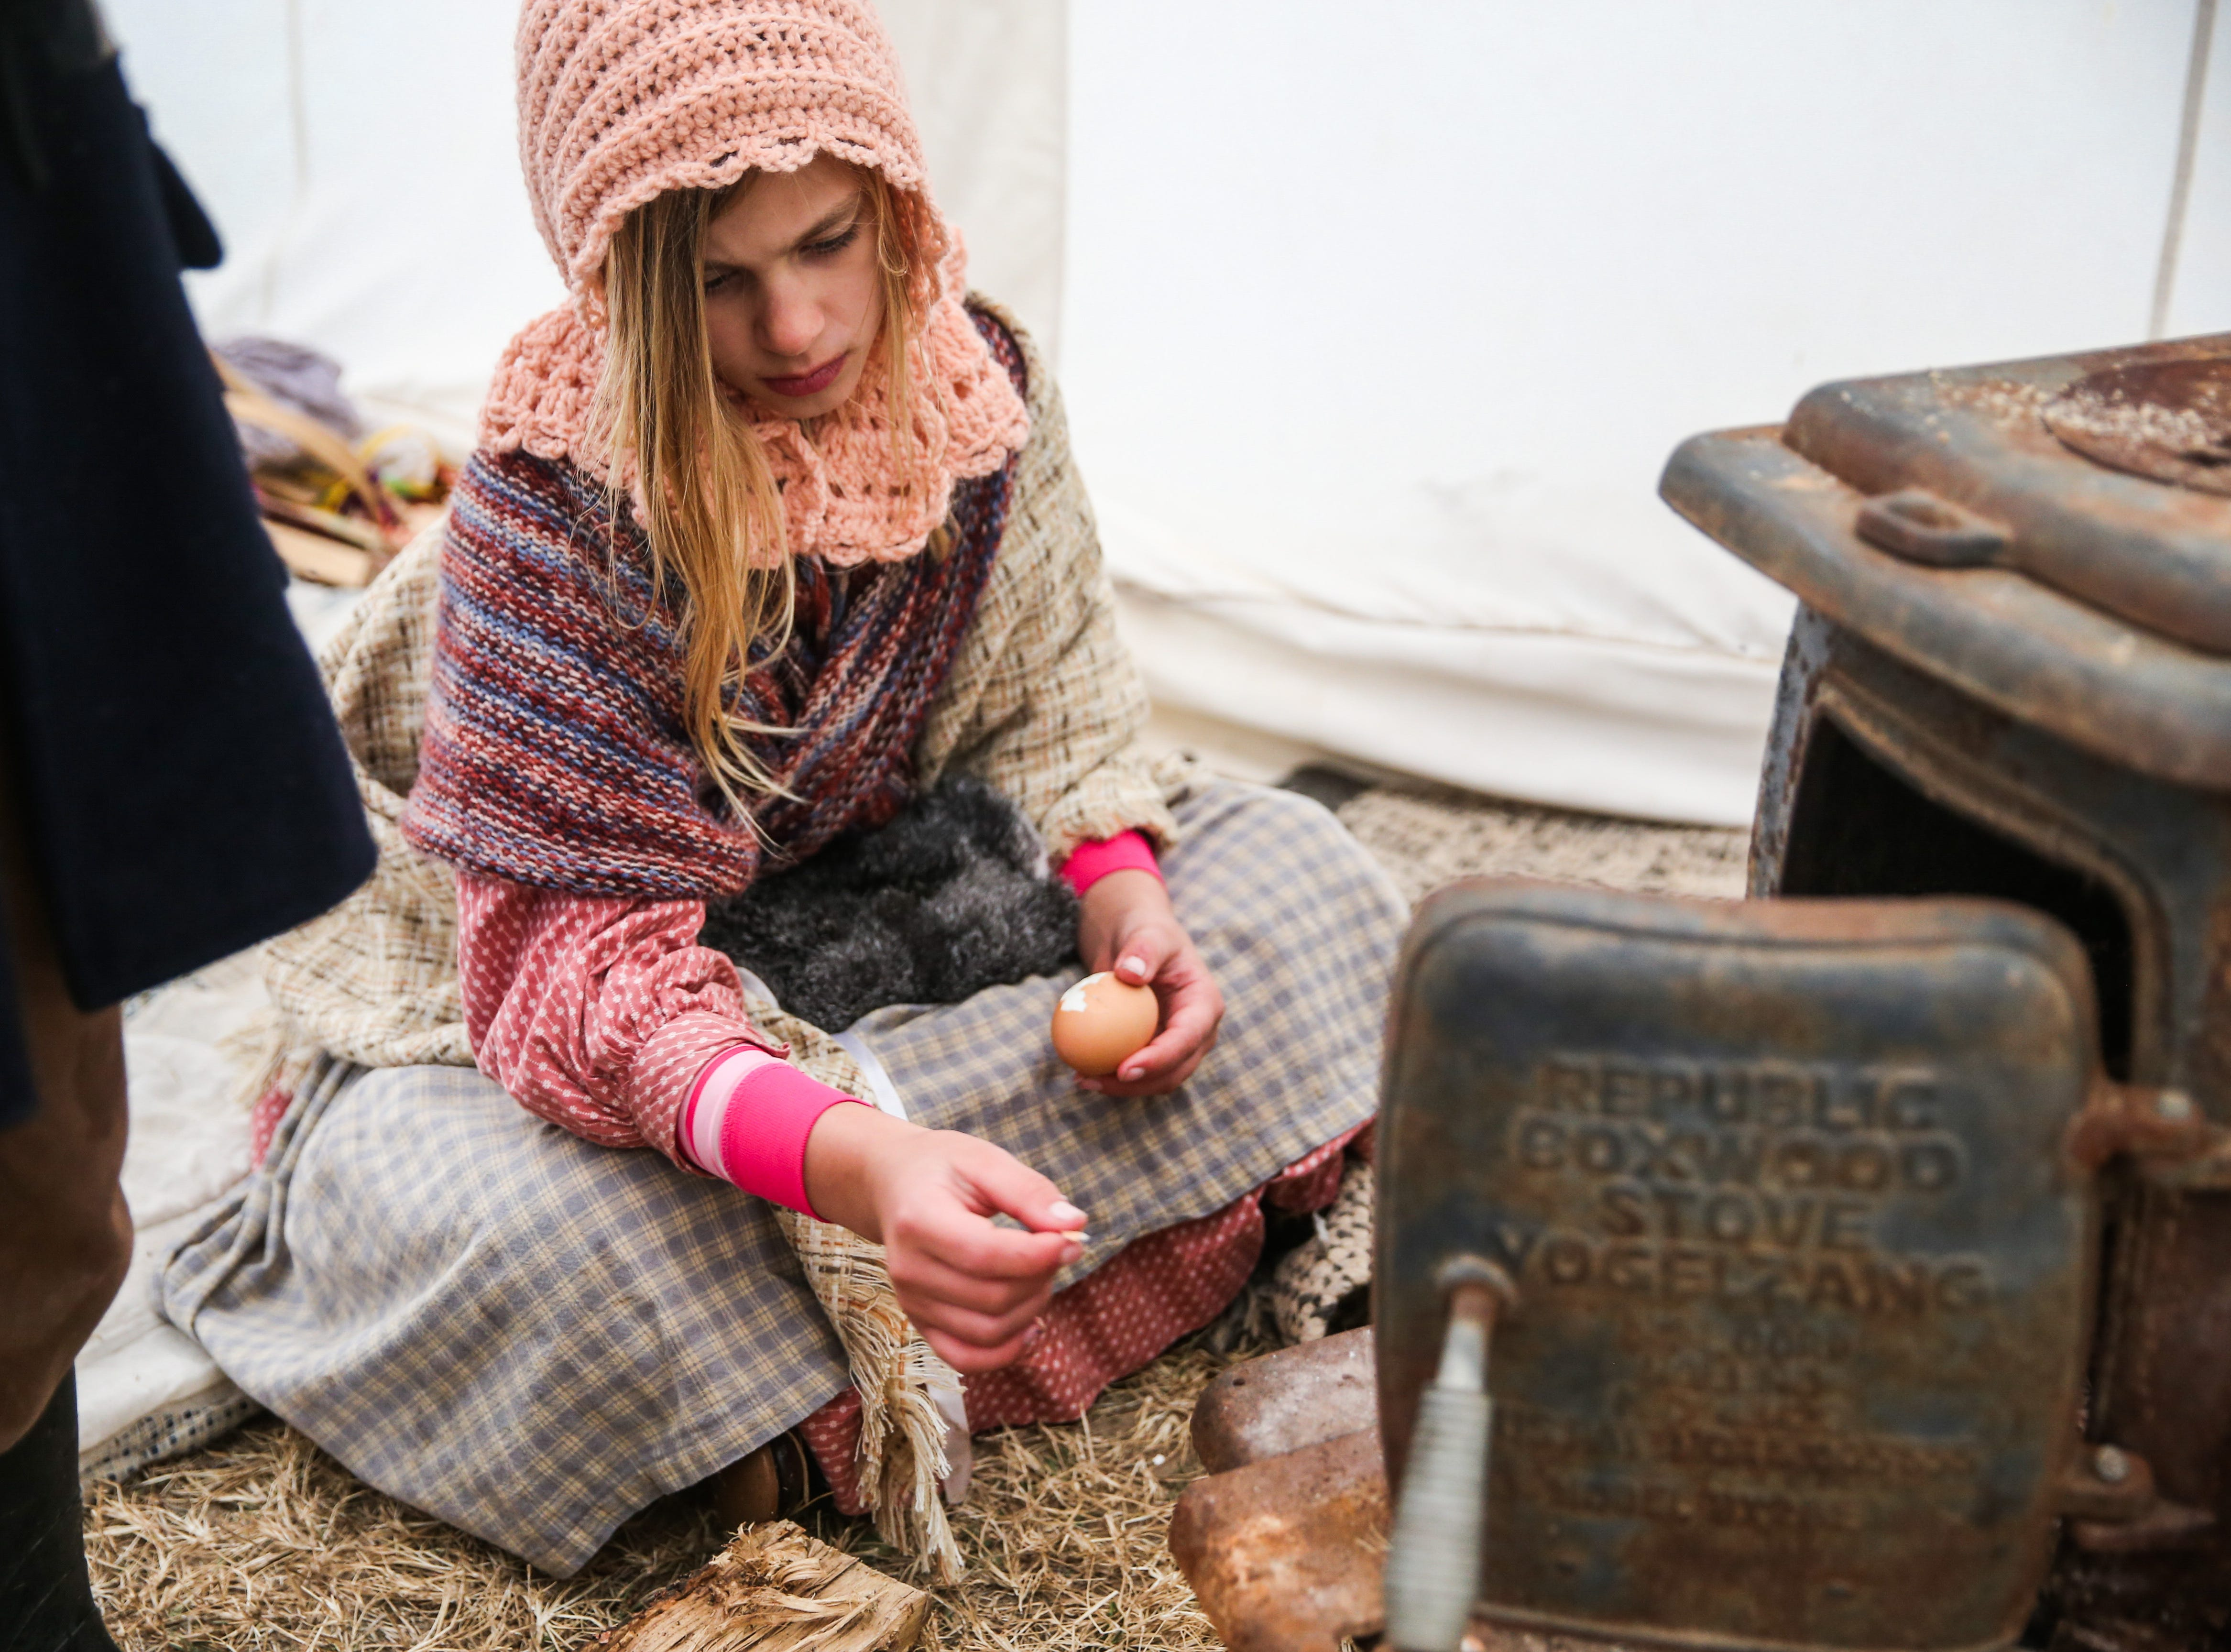 Pecos Hopkins, 9, piles an egg for a snack at camp Friday, Dec. 7, 2018, during Christmas at Old Fort Concho.